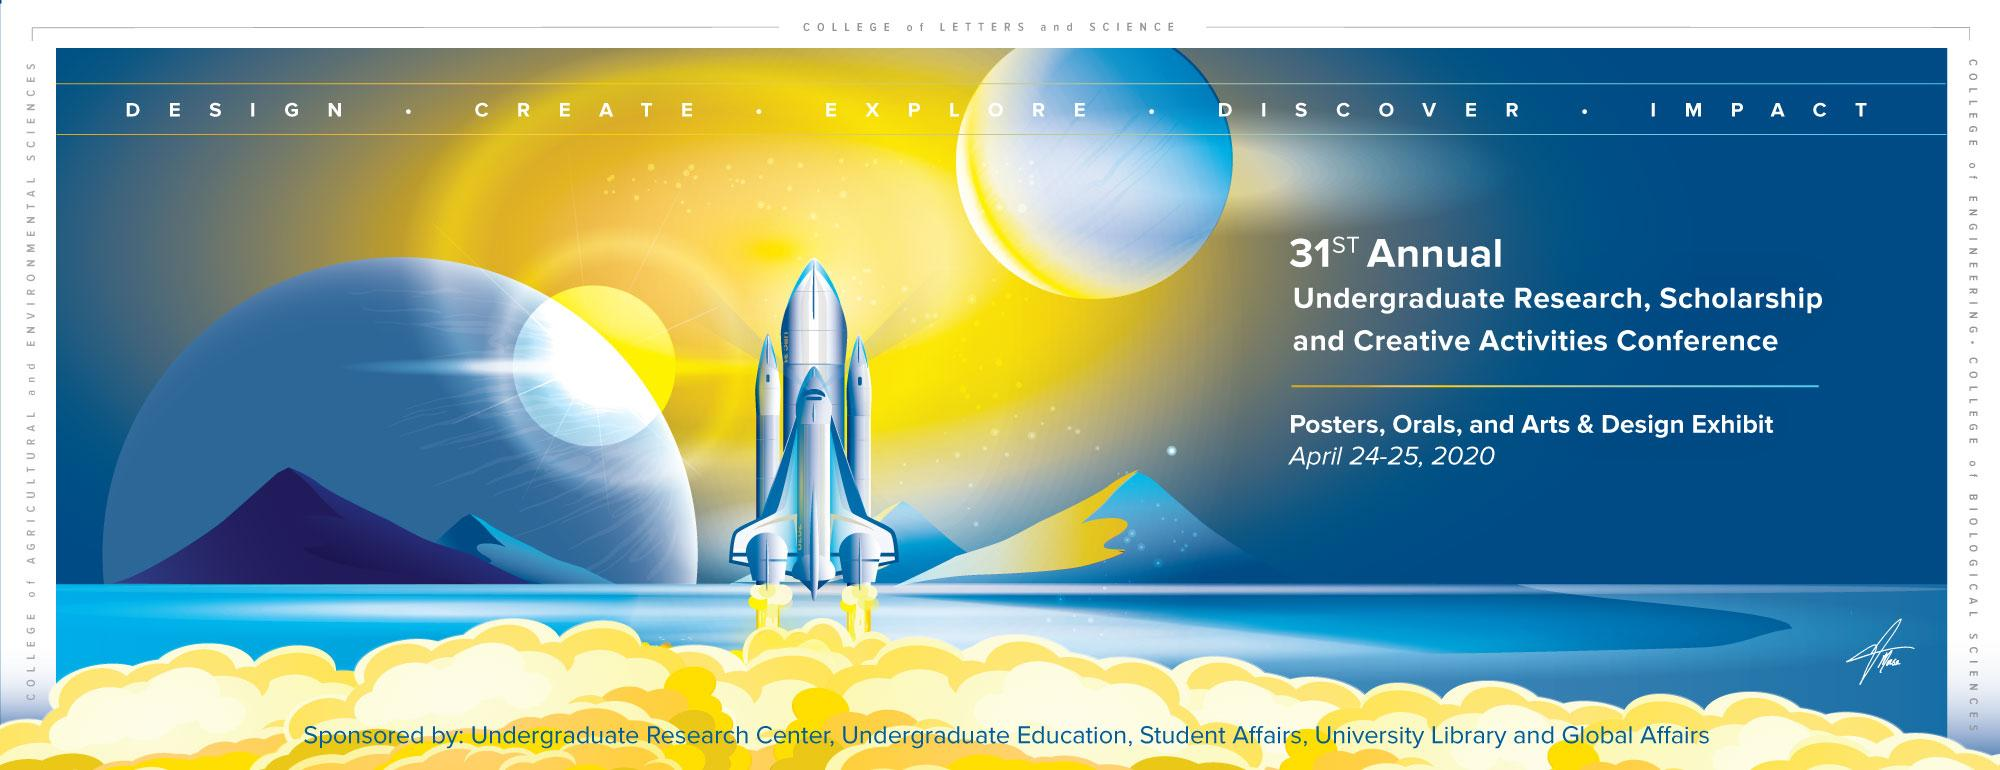 Graphic design of spaceship blacting off and planetary elements and details of URC Conference